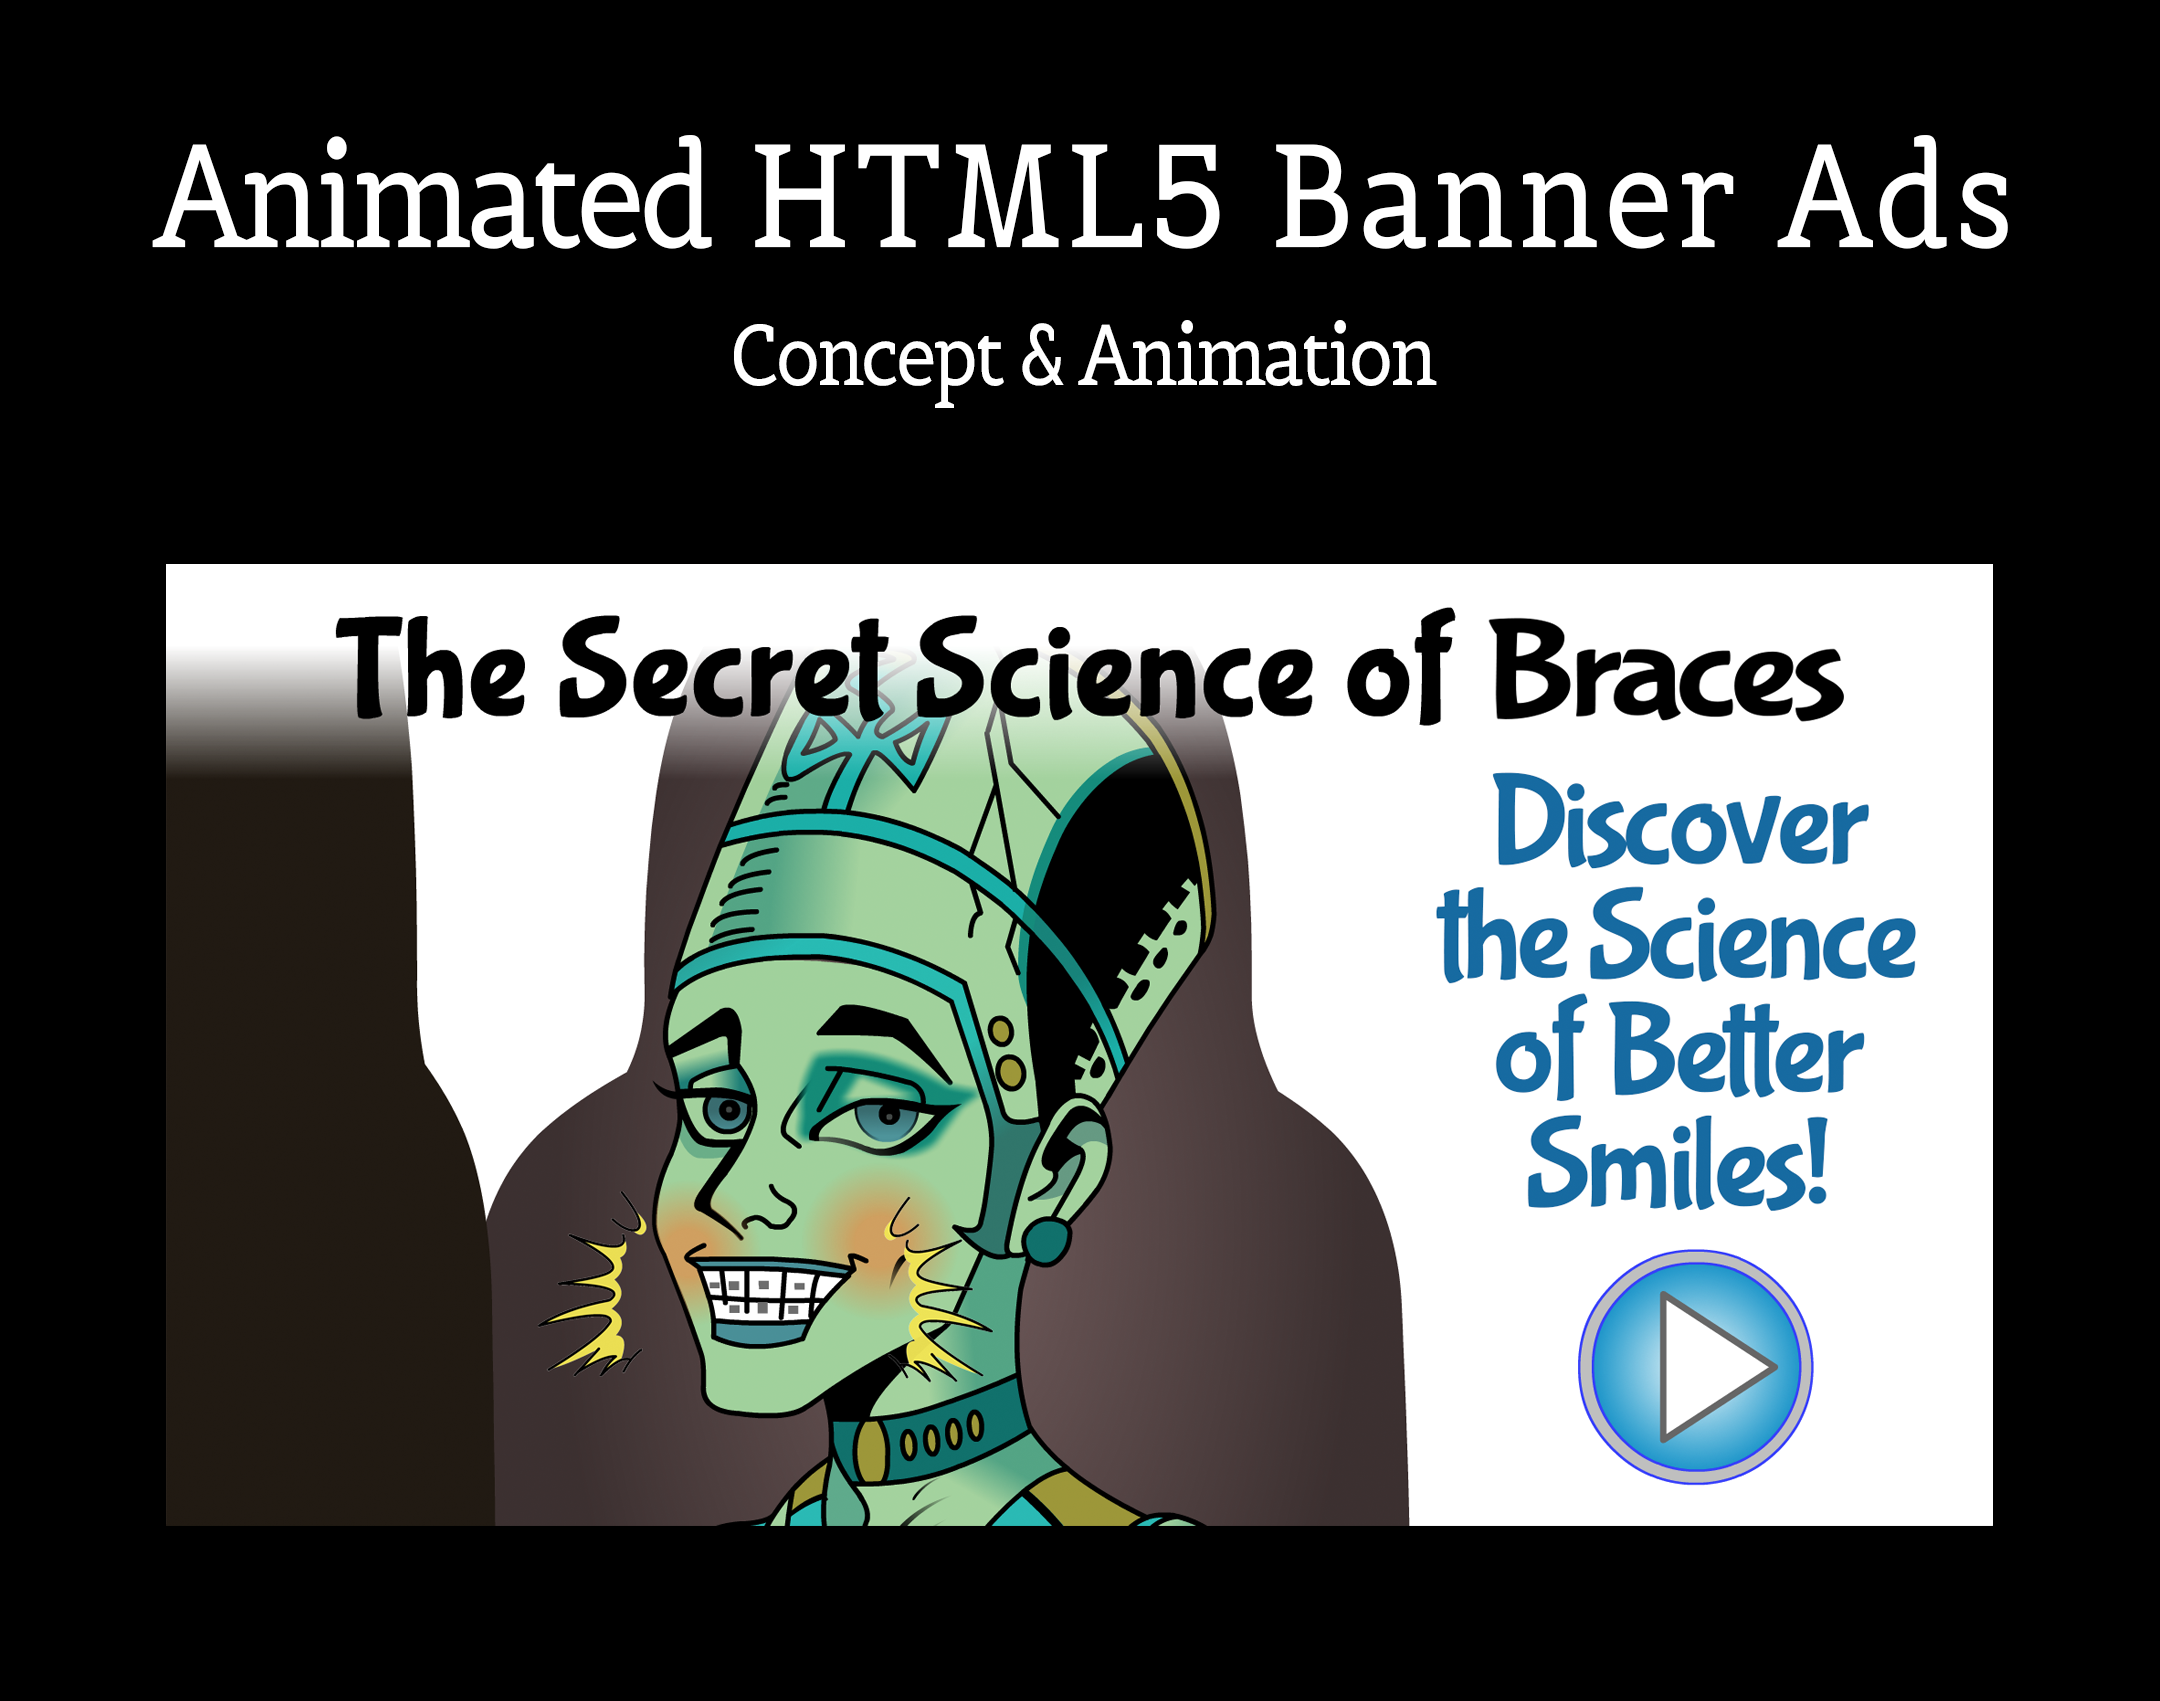 Animated Banner Ads – HTML5: Braces